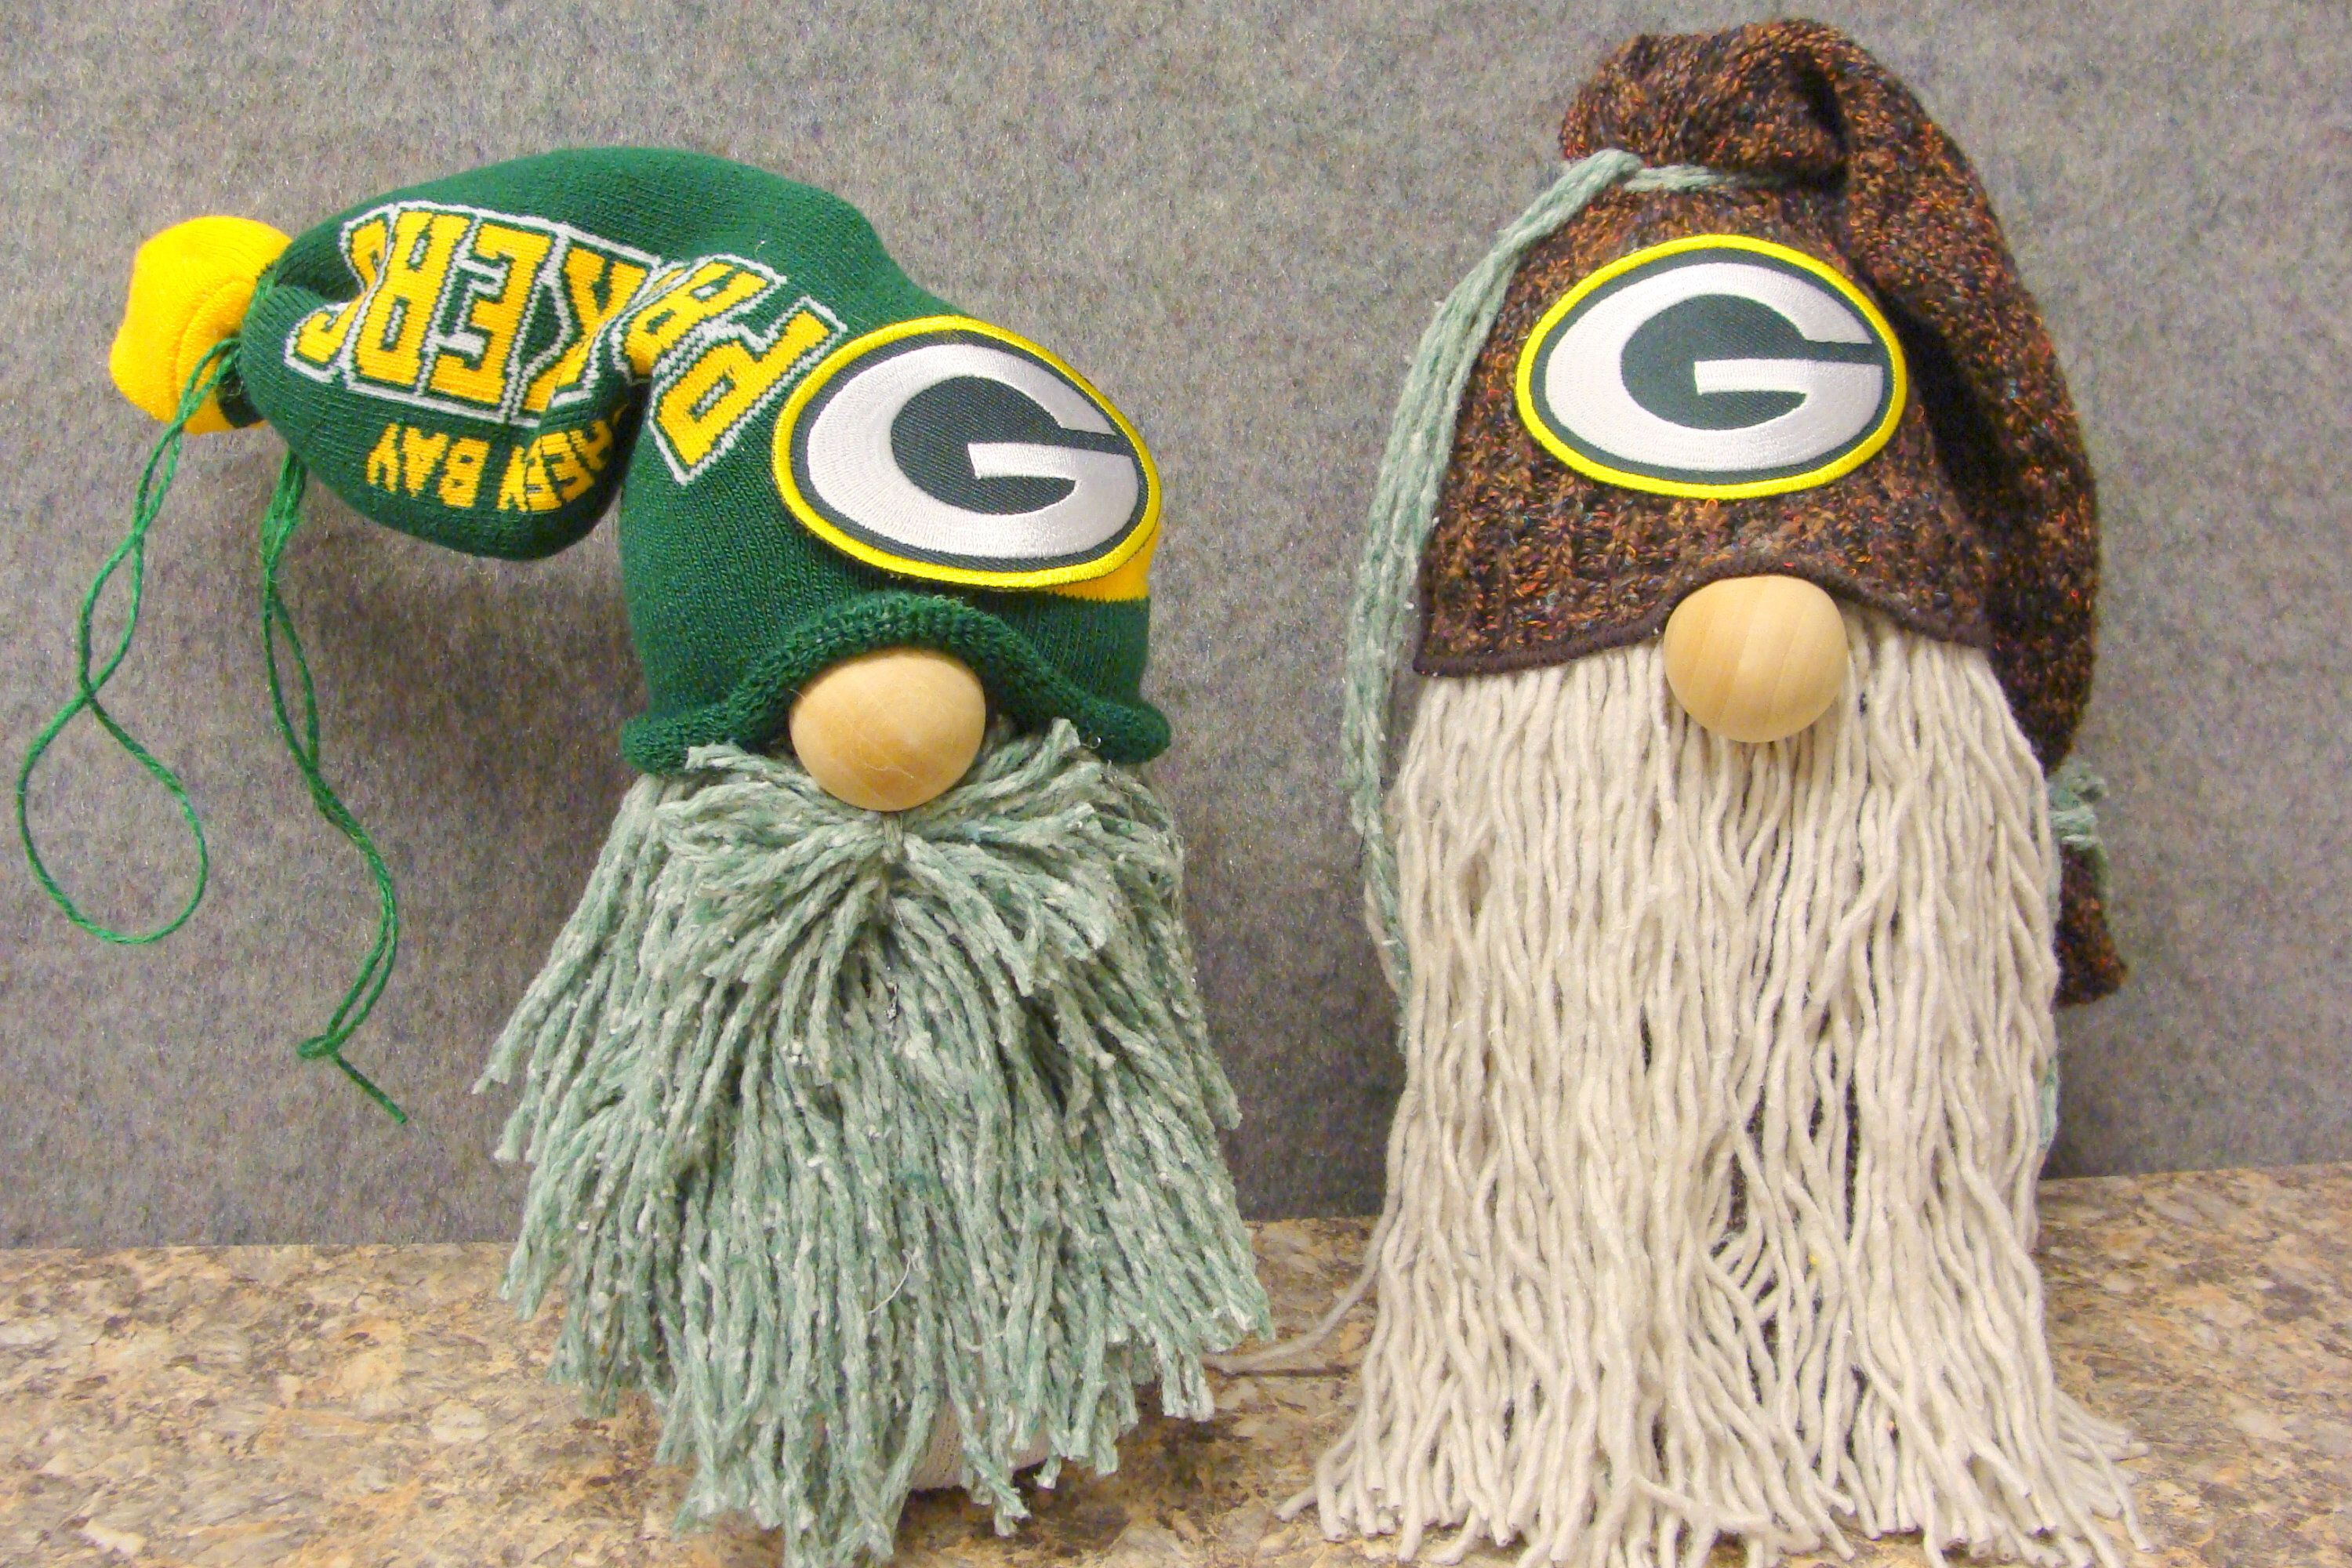 Gnome Green Bay Packers Your Choice In 2020 Yarn Beard Gnomes Green Bay